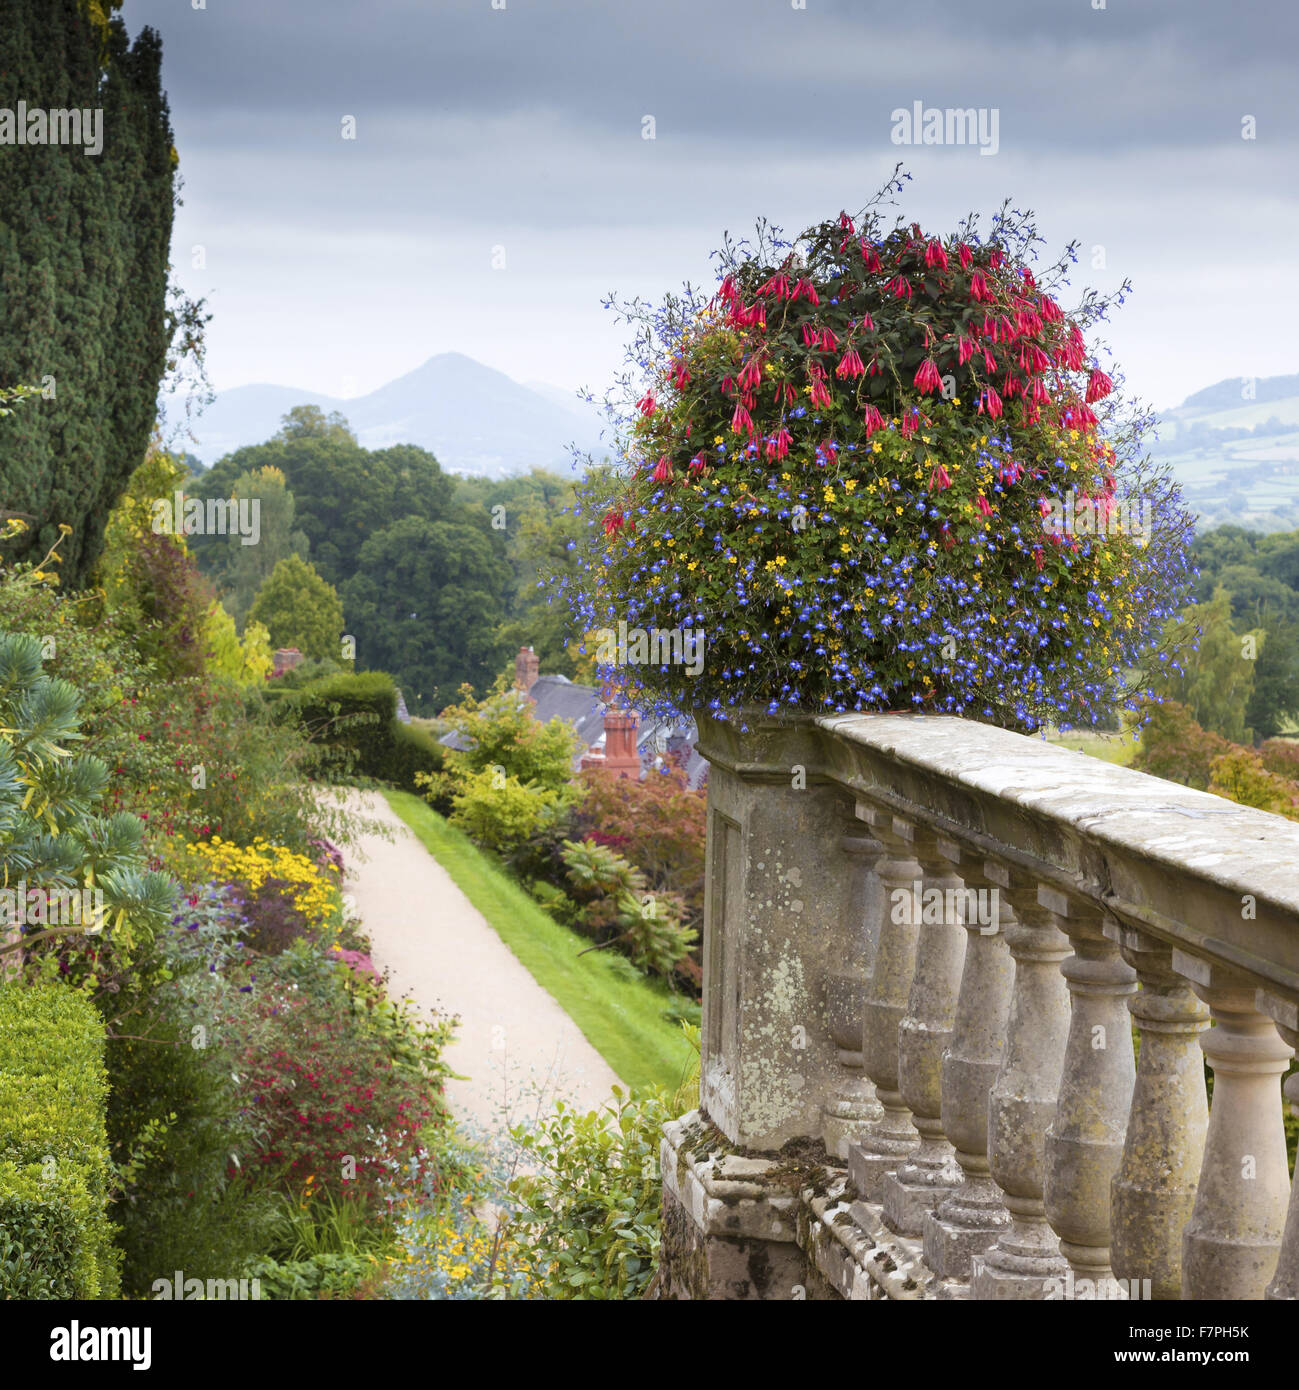 View from the flower-filled garden terraces at Powis Castle and Garden, Powys, Wales, in September. - Stock Image